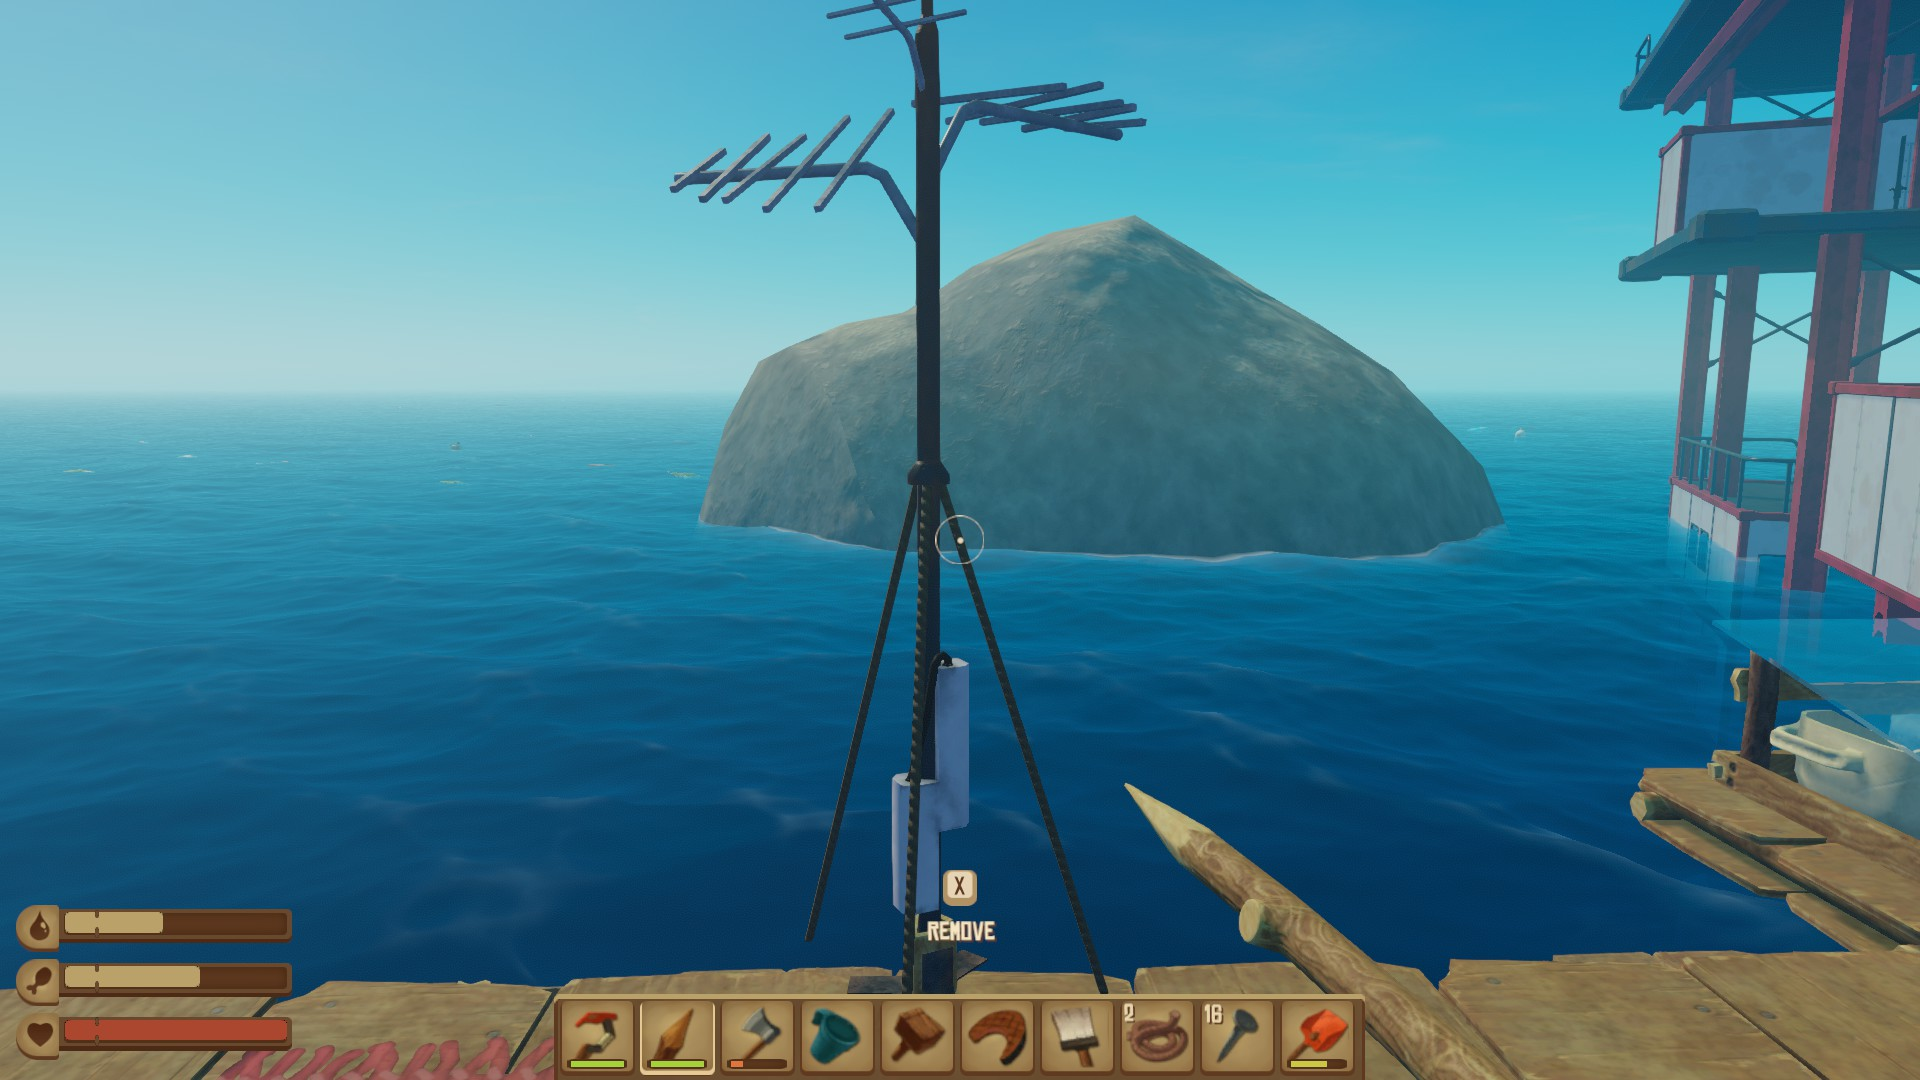 Steam Community :: Guide :: Full Comprehensive Guide to Raft!